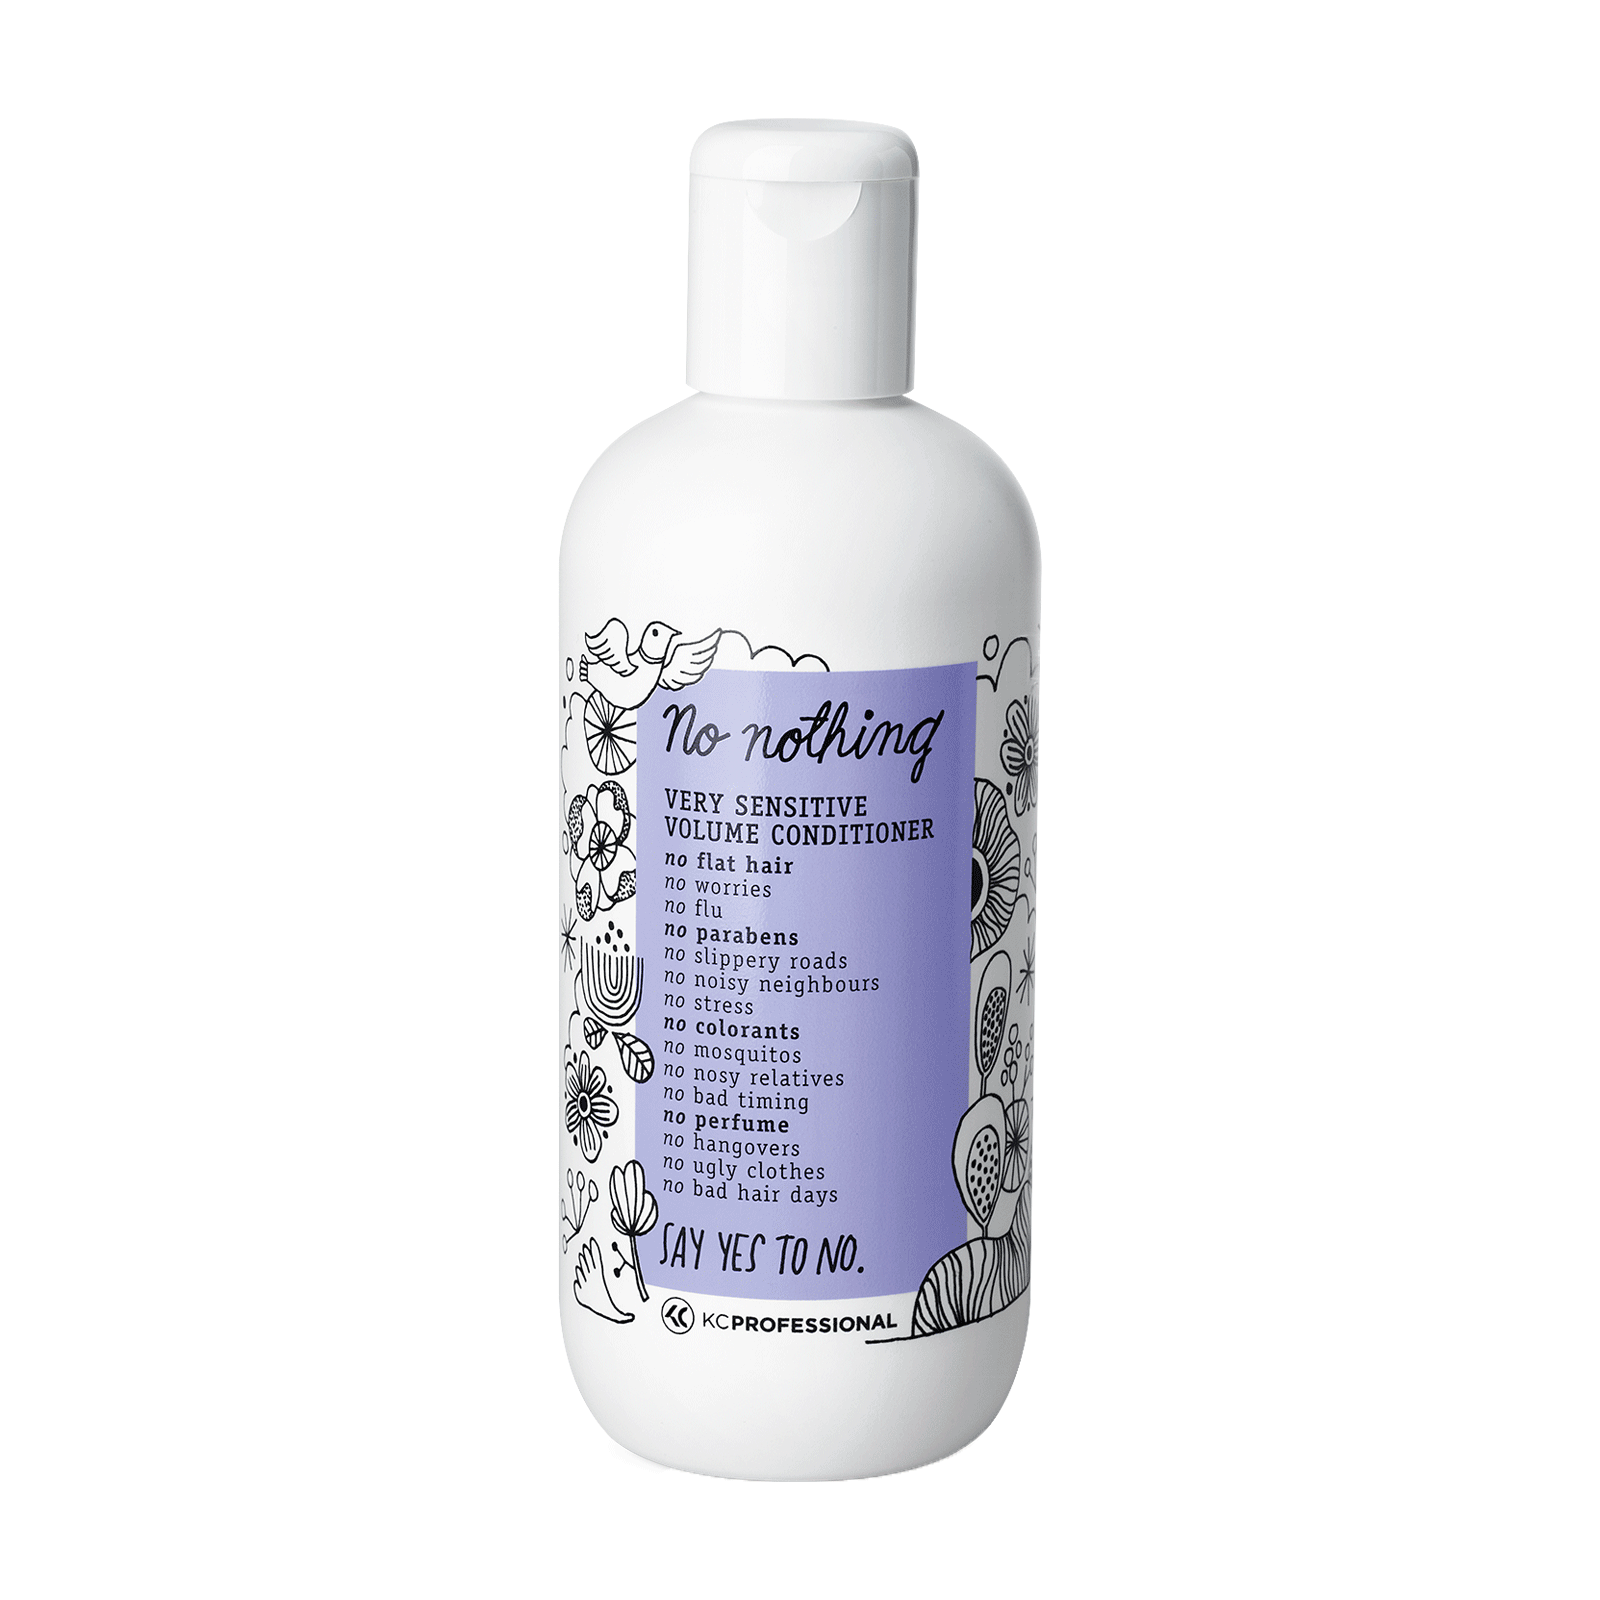 Very Sensitive Volume Conditioner